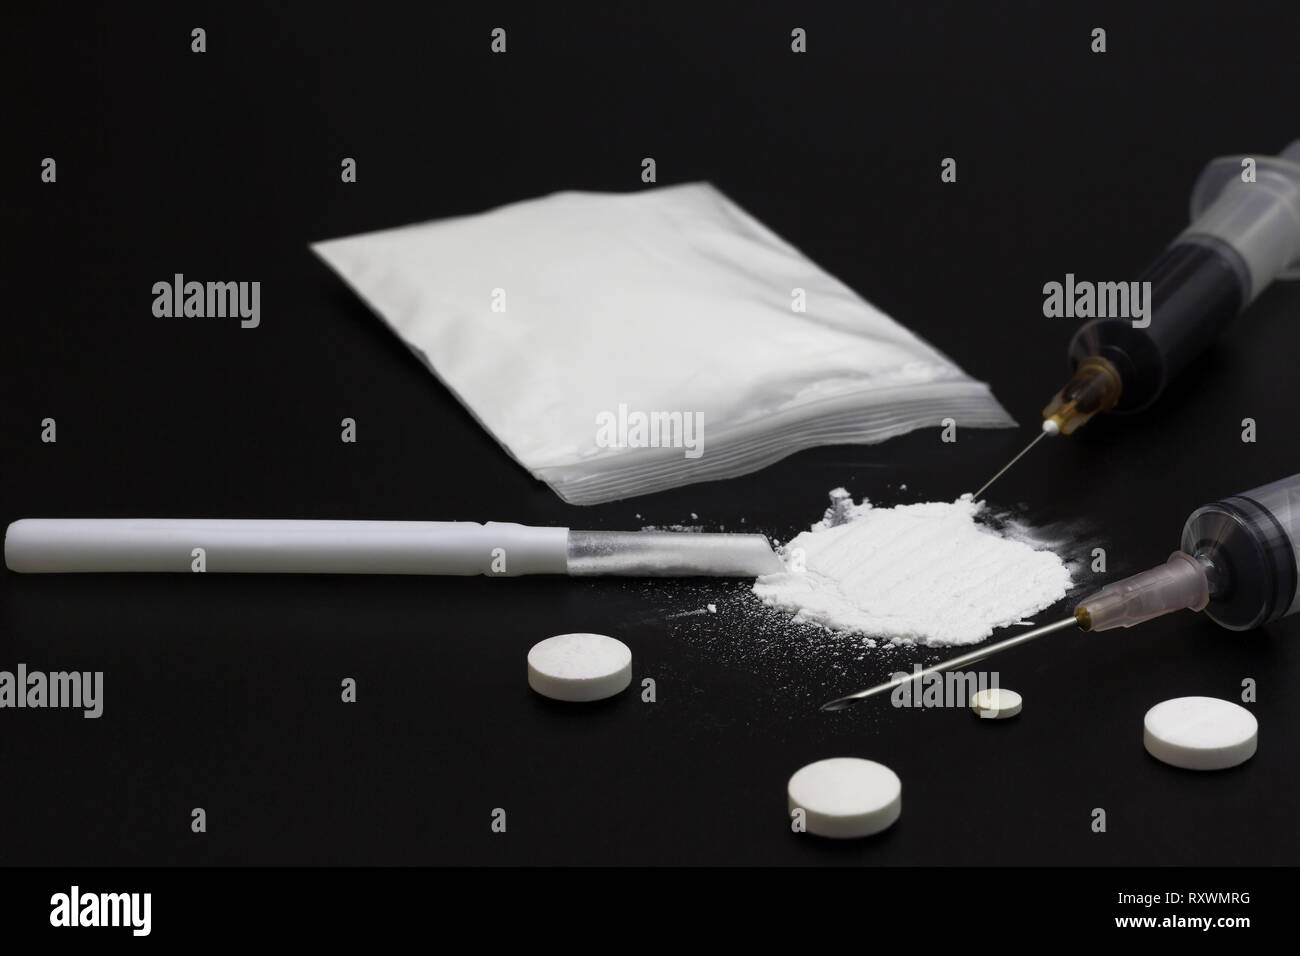 Fake Heroin or diacetylmorphine bag and syringes placed side by side. Low key addictive substance on darkness background. - Stock Image